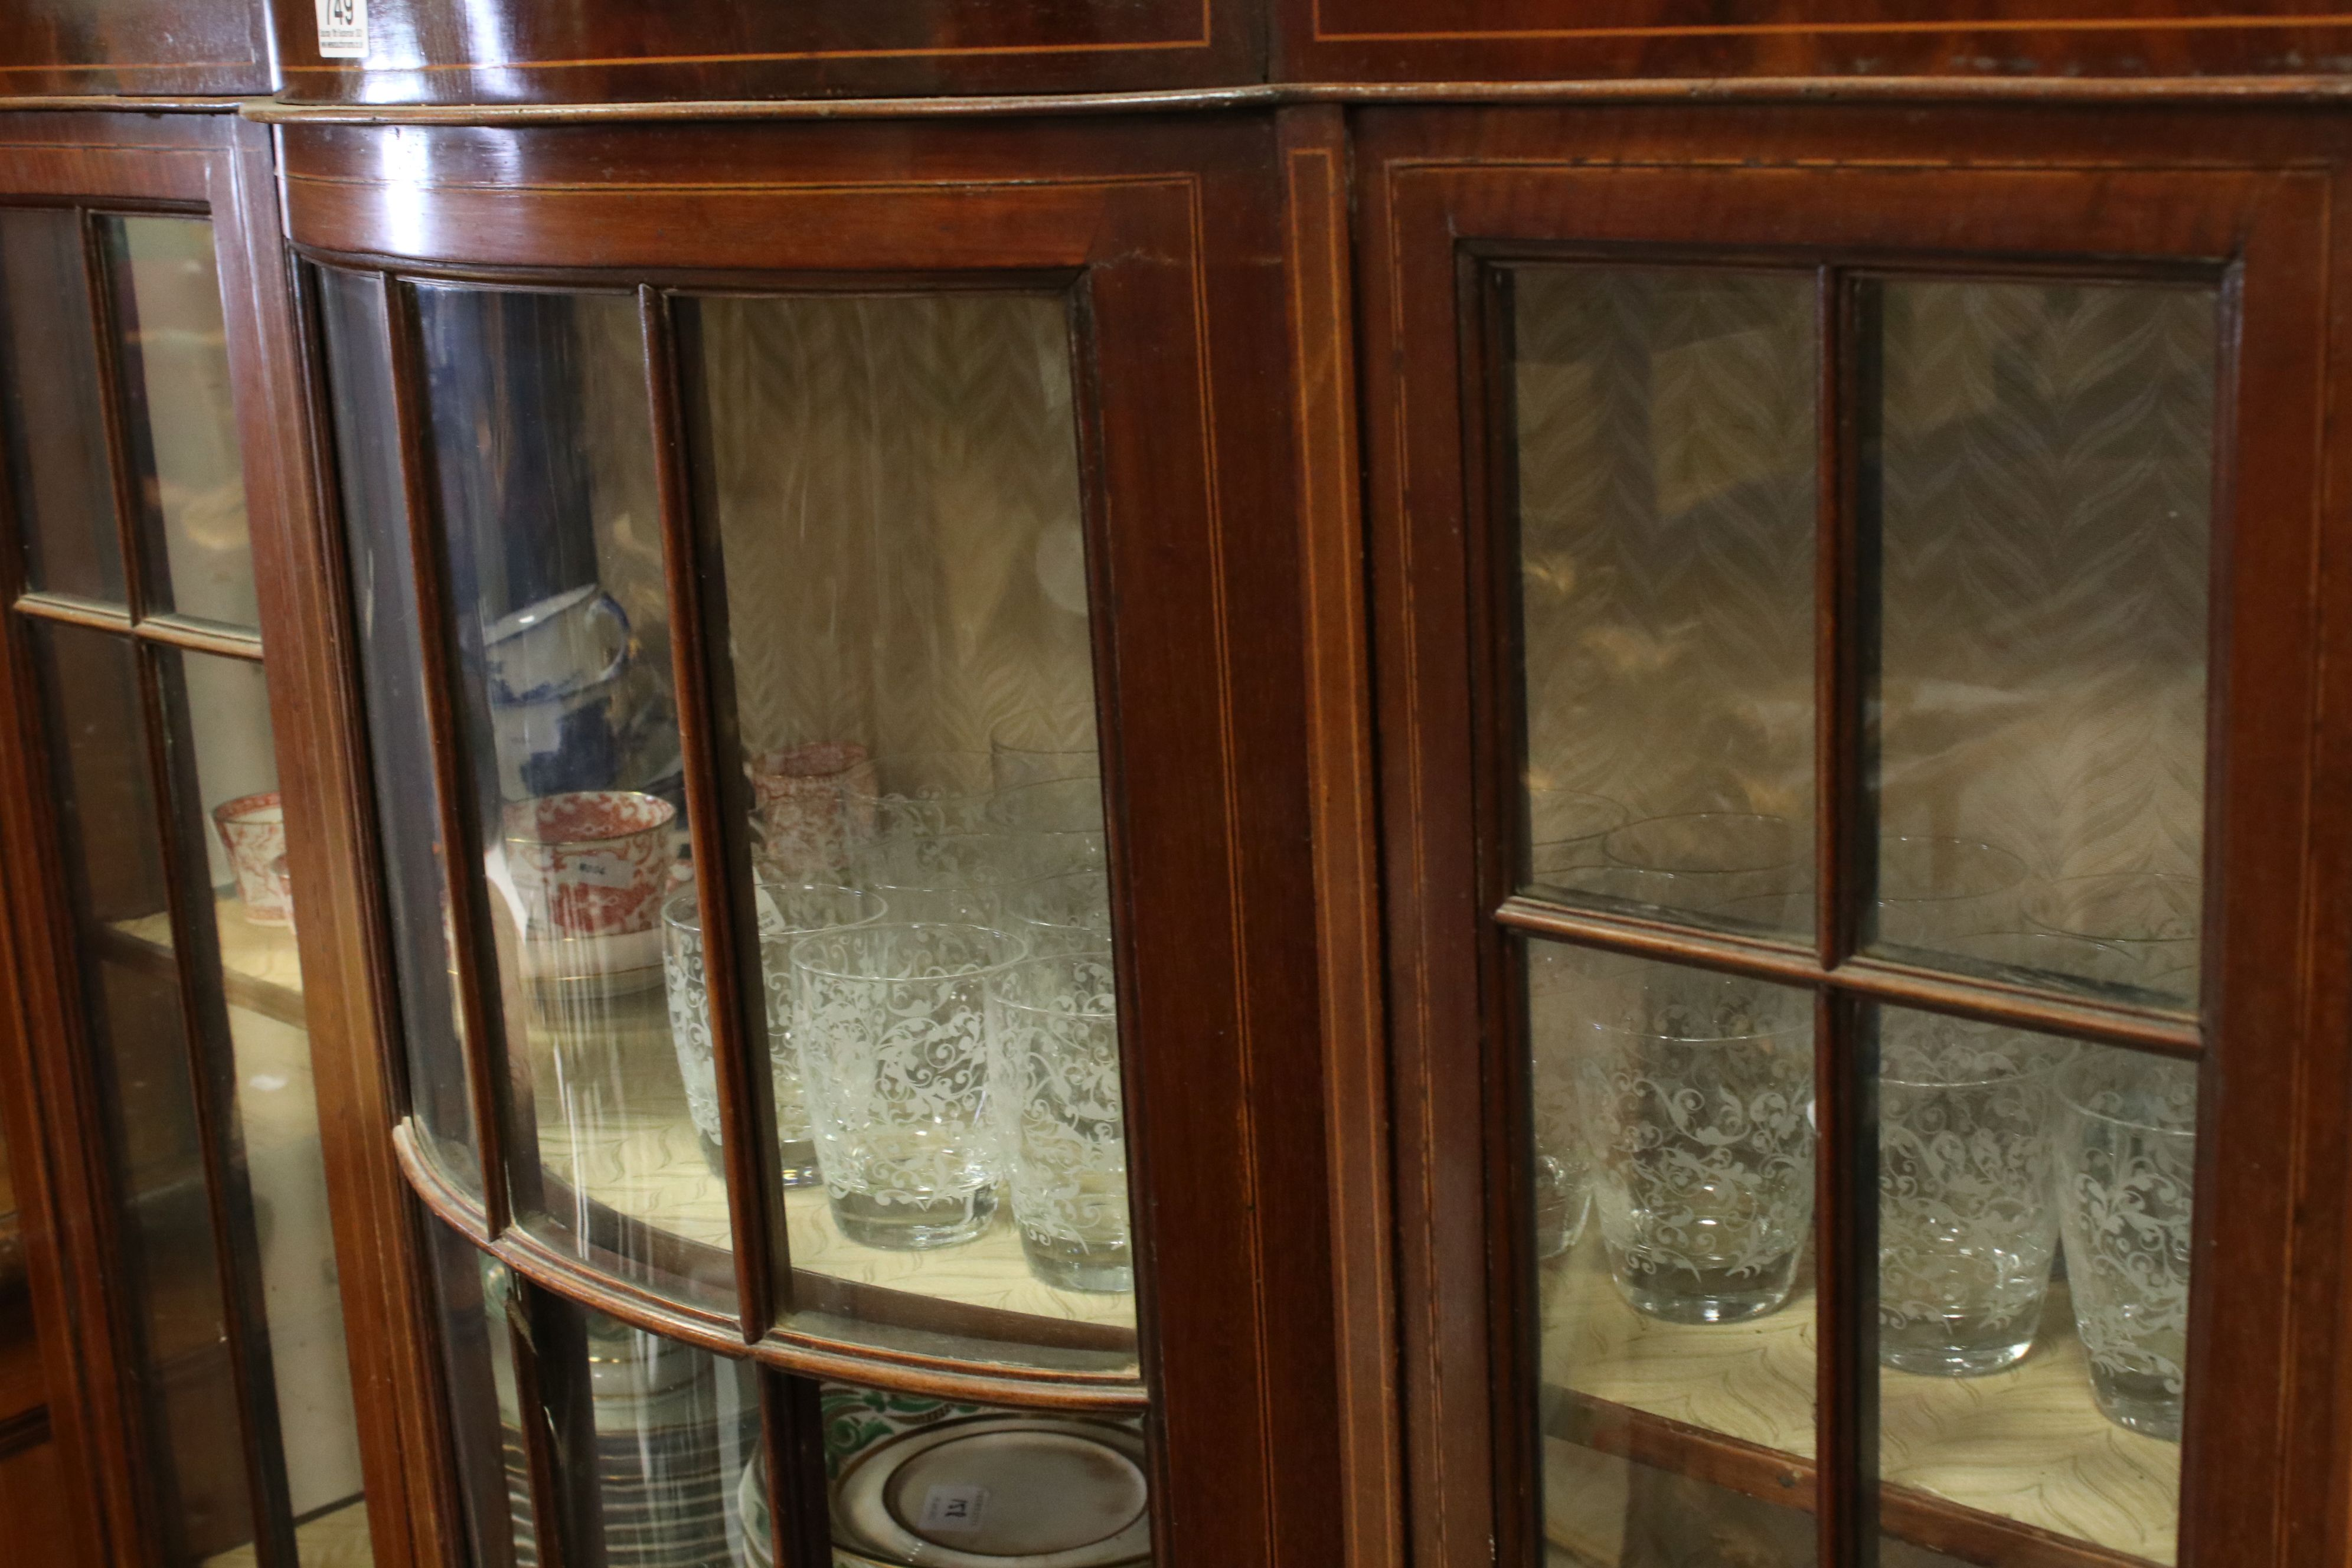 Edwardian Mahogany Inlaid Display Cabinet, 114cms wide x 153cms high - Image 3 of 5